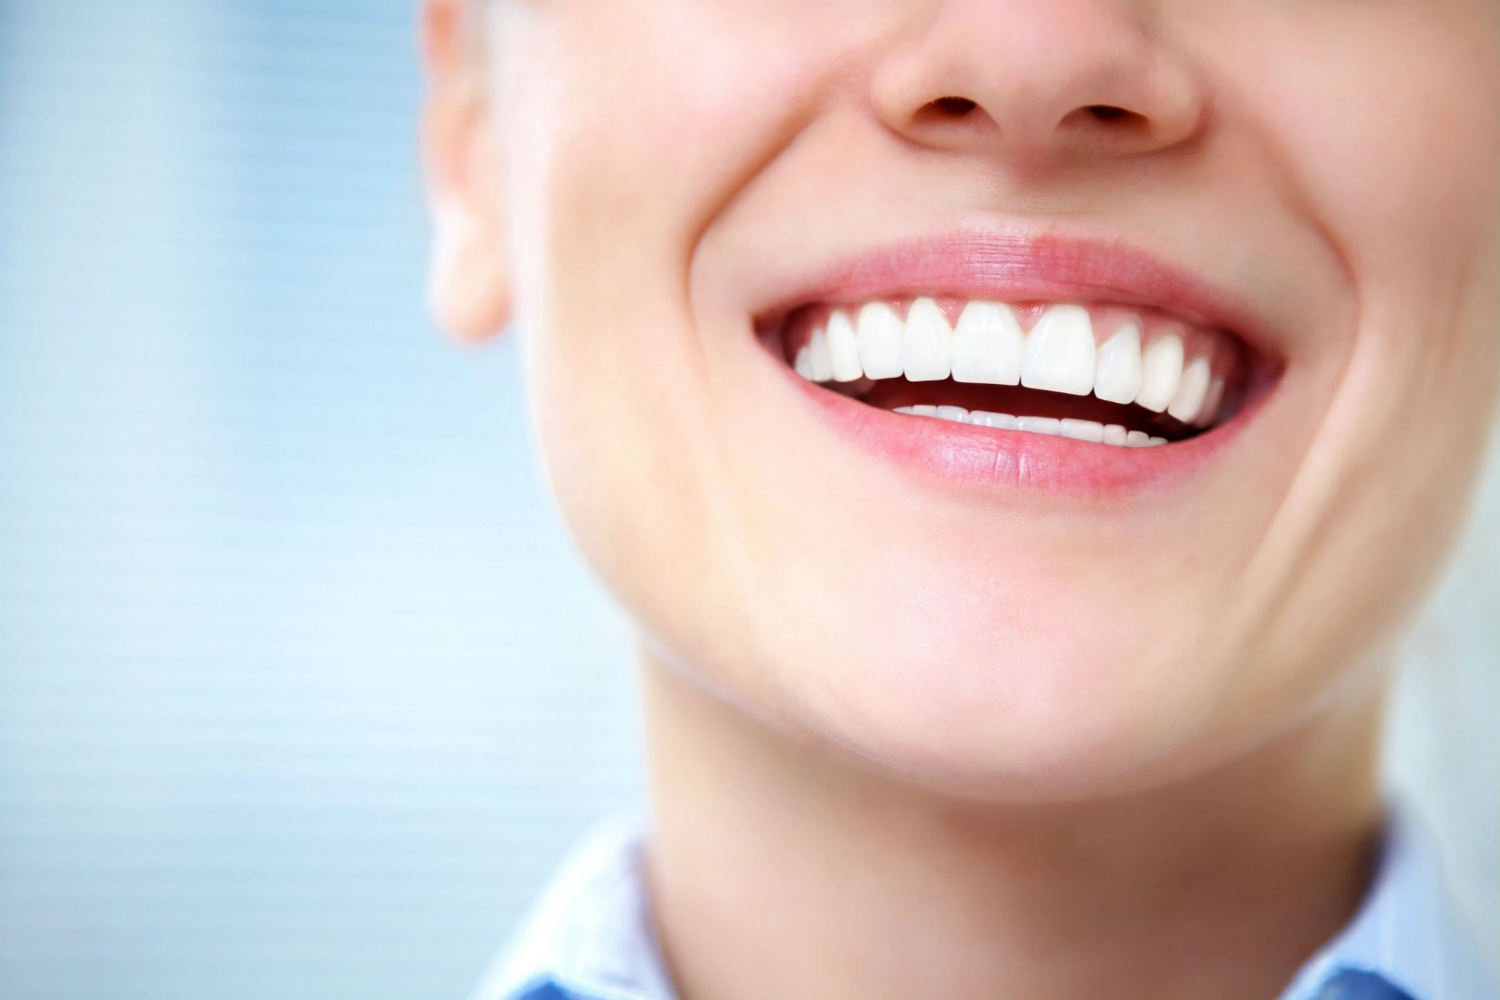 teeth-whitening-image